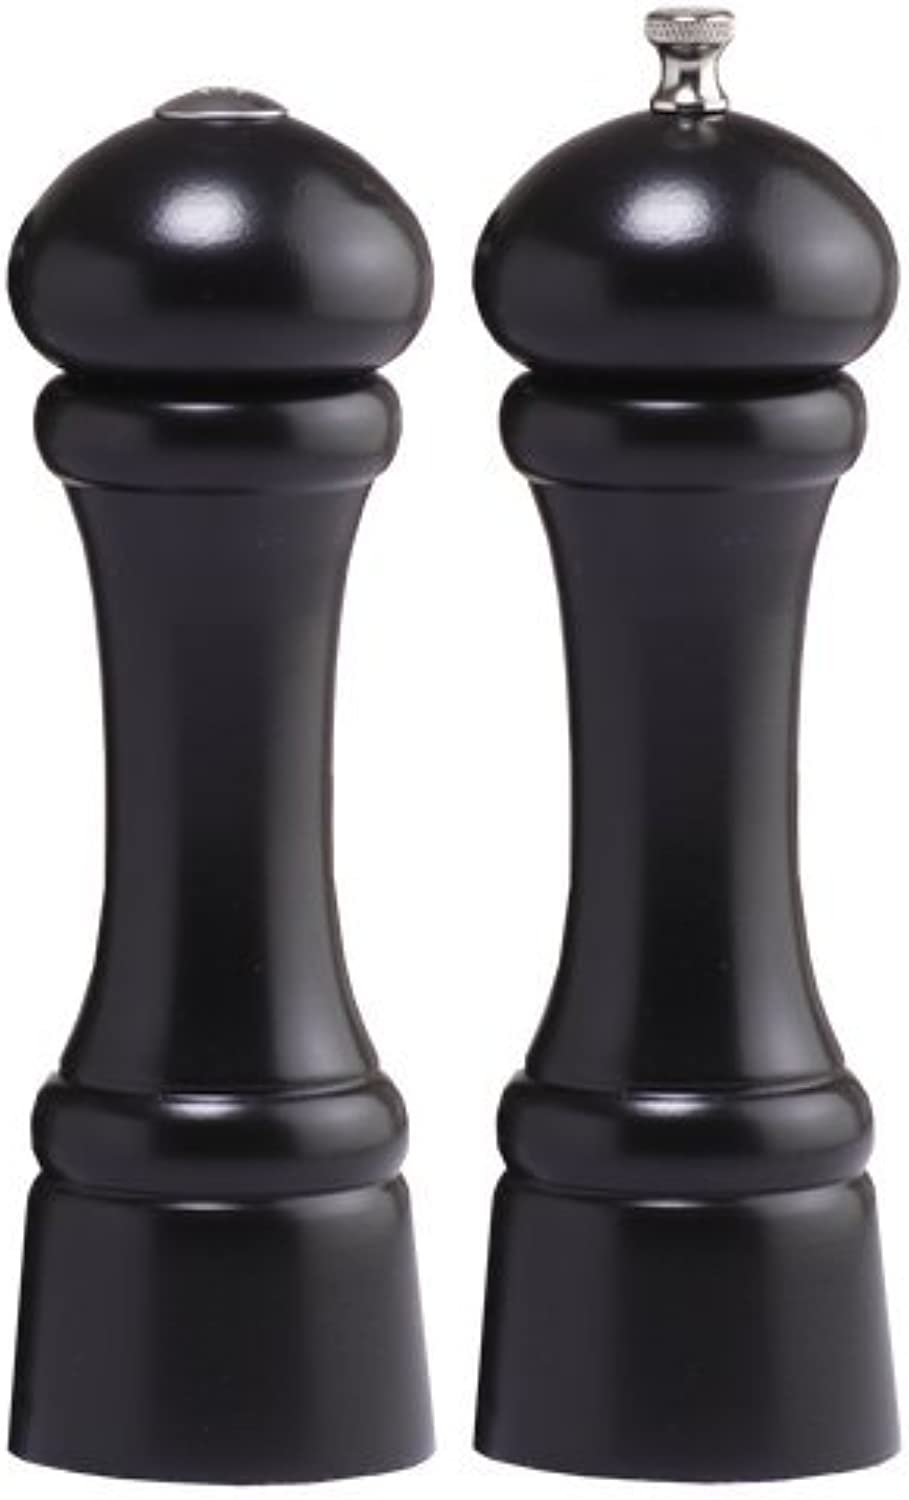 Chef Specialties 8 Inch Windsor Pepper Mill and Salt Shaker Set - Ebony